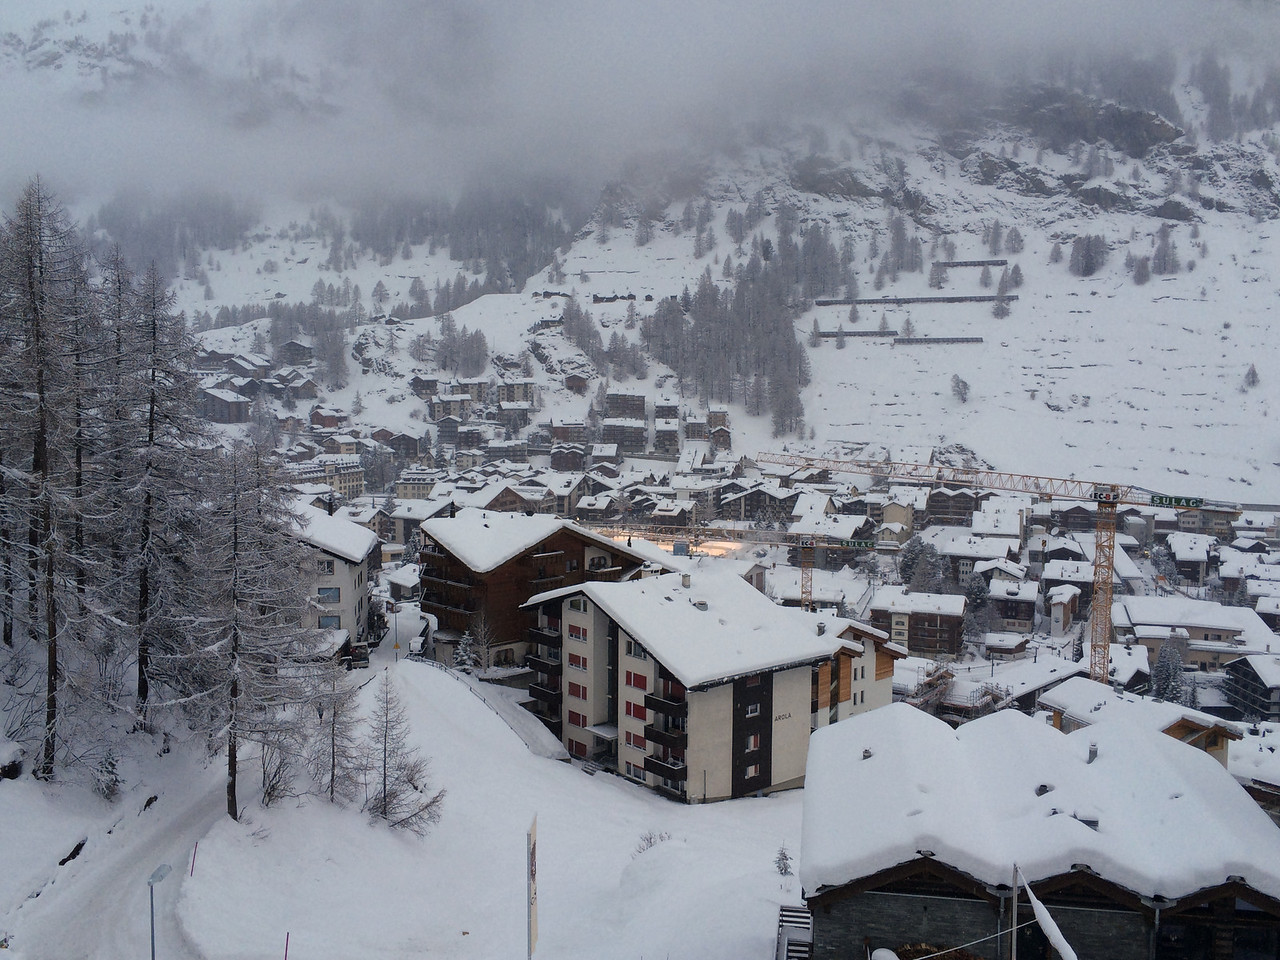 You can also see down into the village of Zermatt.